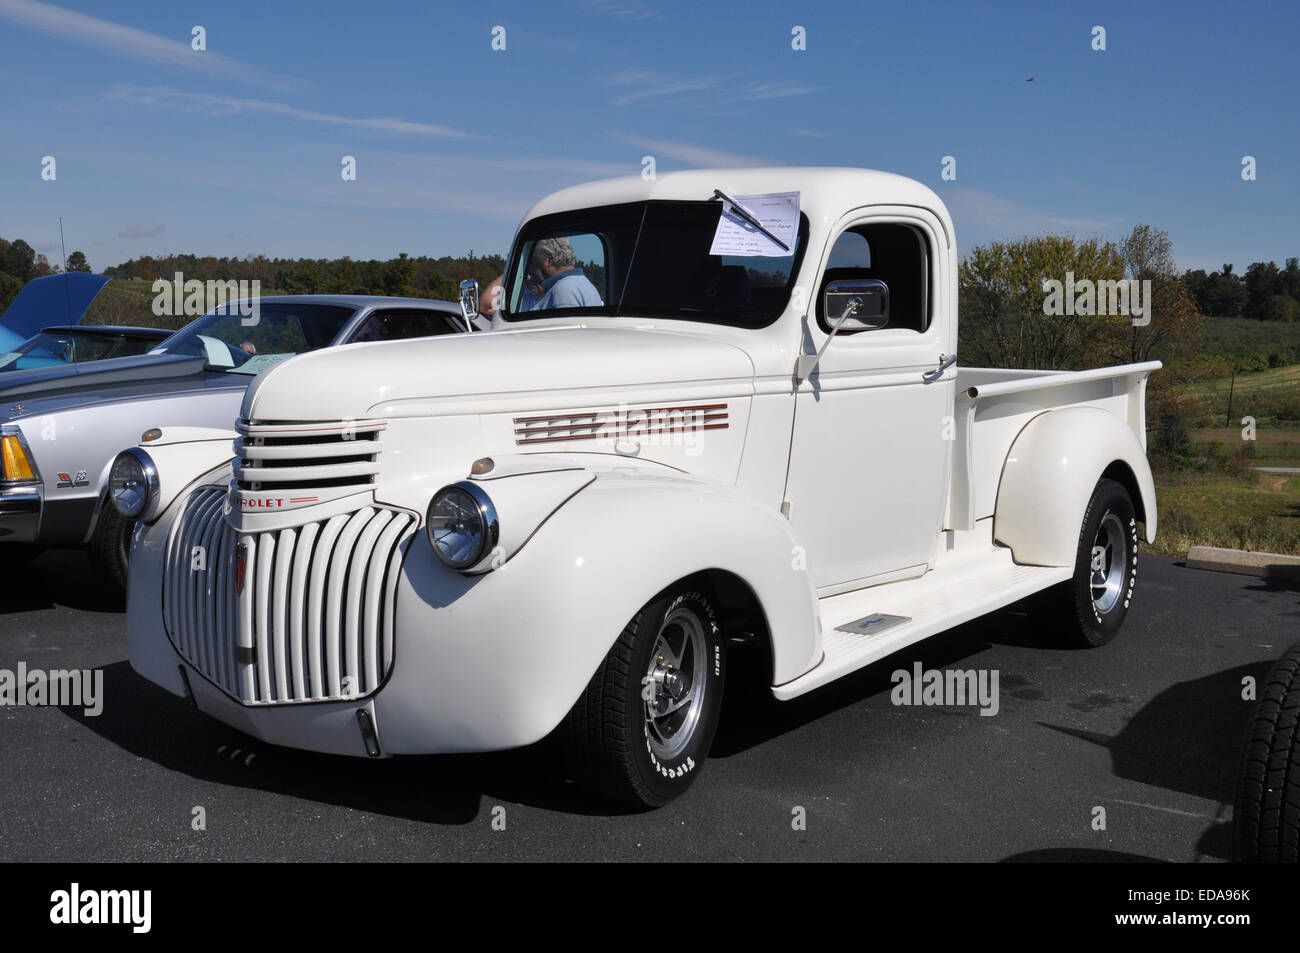 A 1946 Chevrolet Pickup Truck. Stock Photo